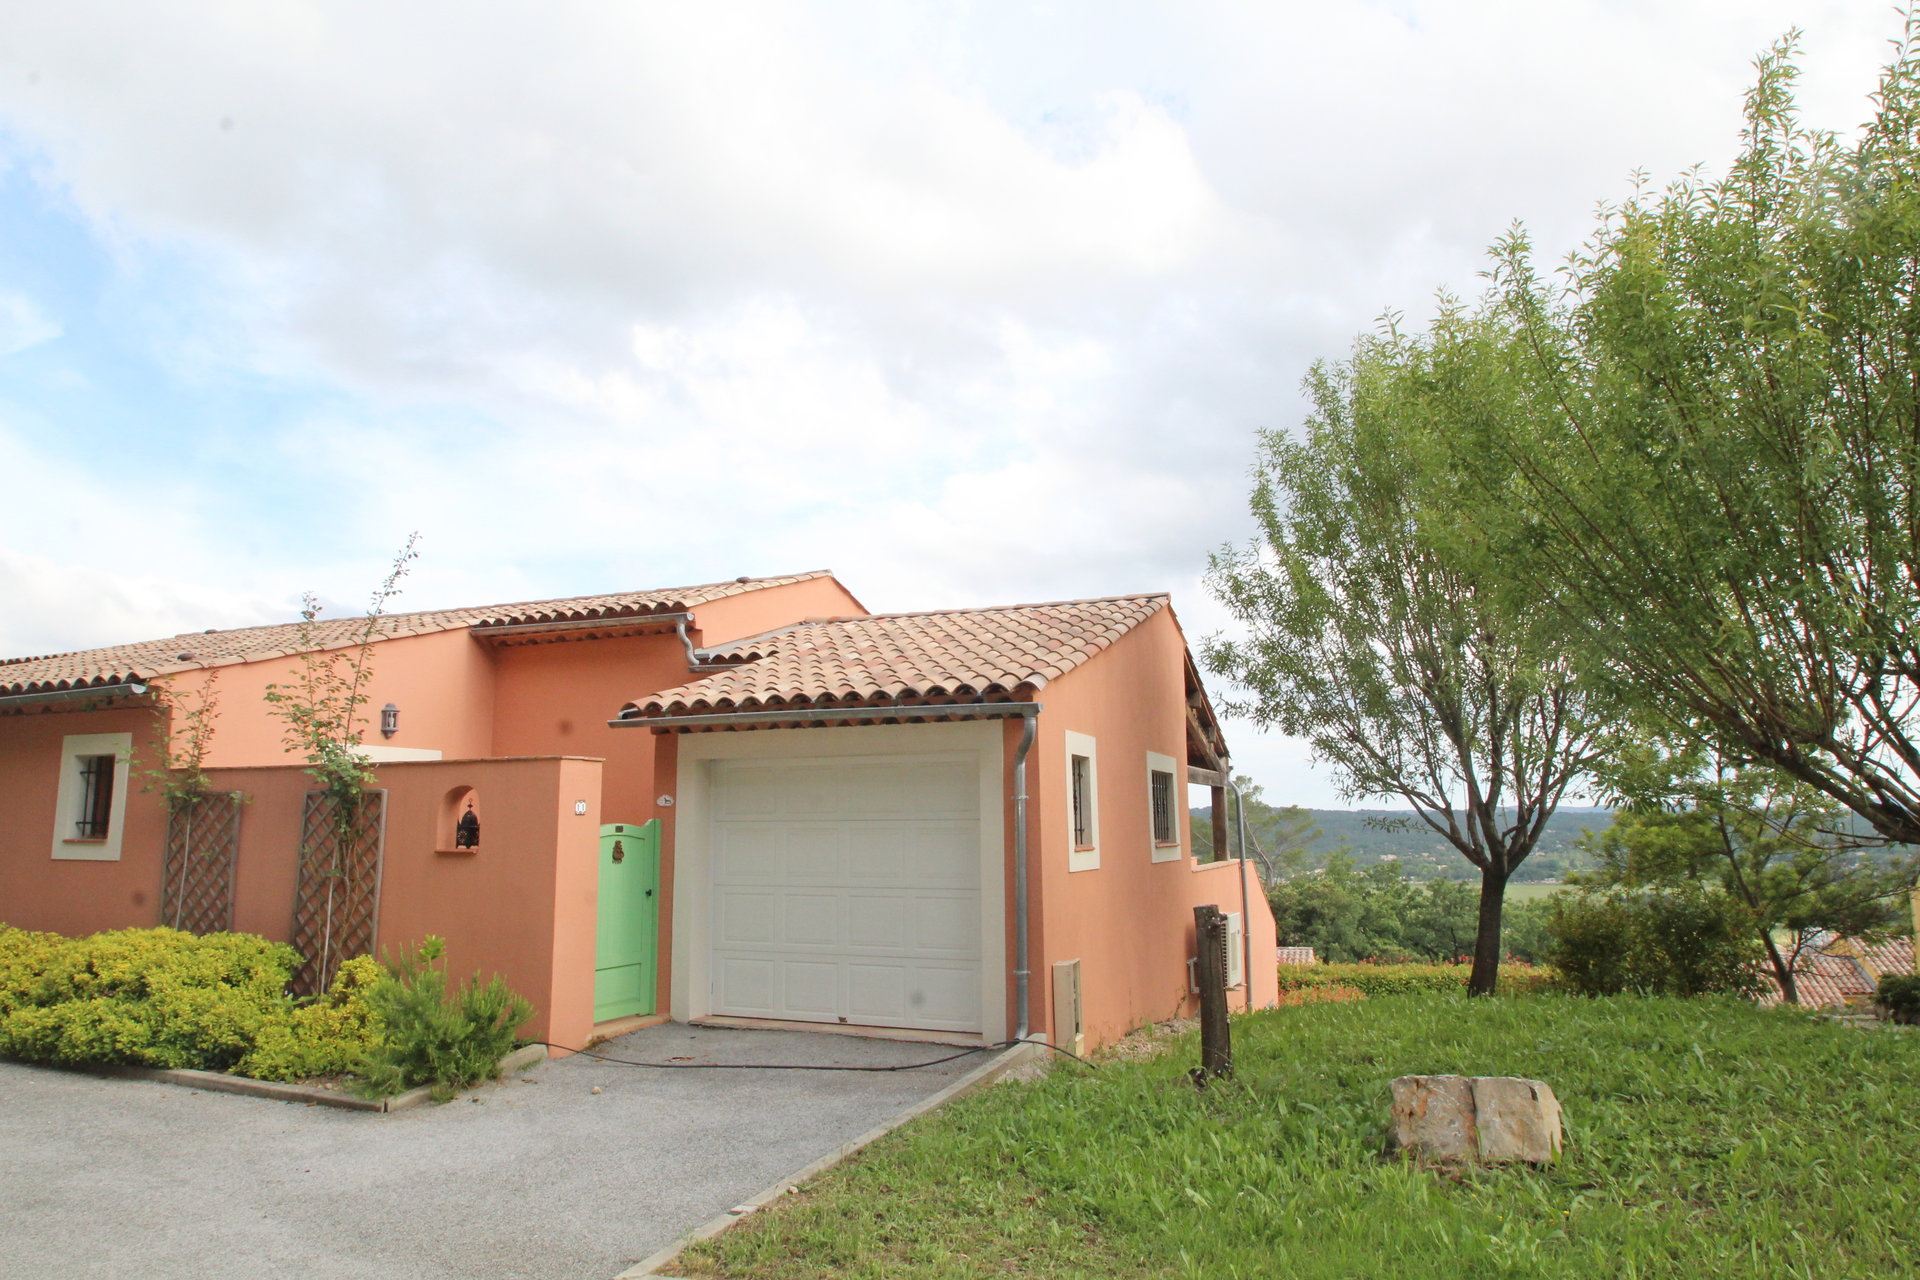 Fayence - Lovely holiday home with stunning views